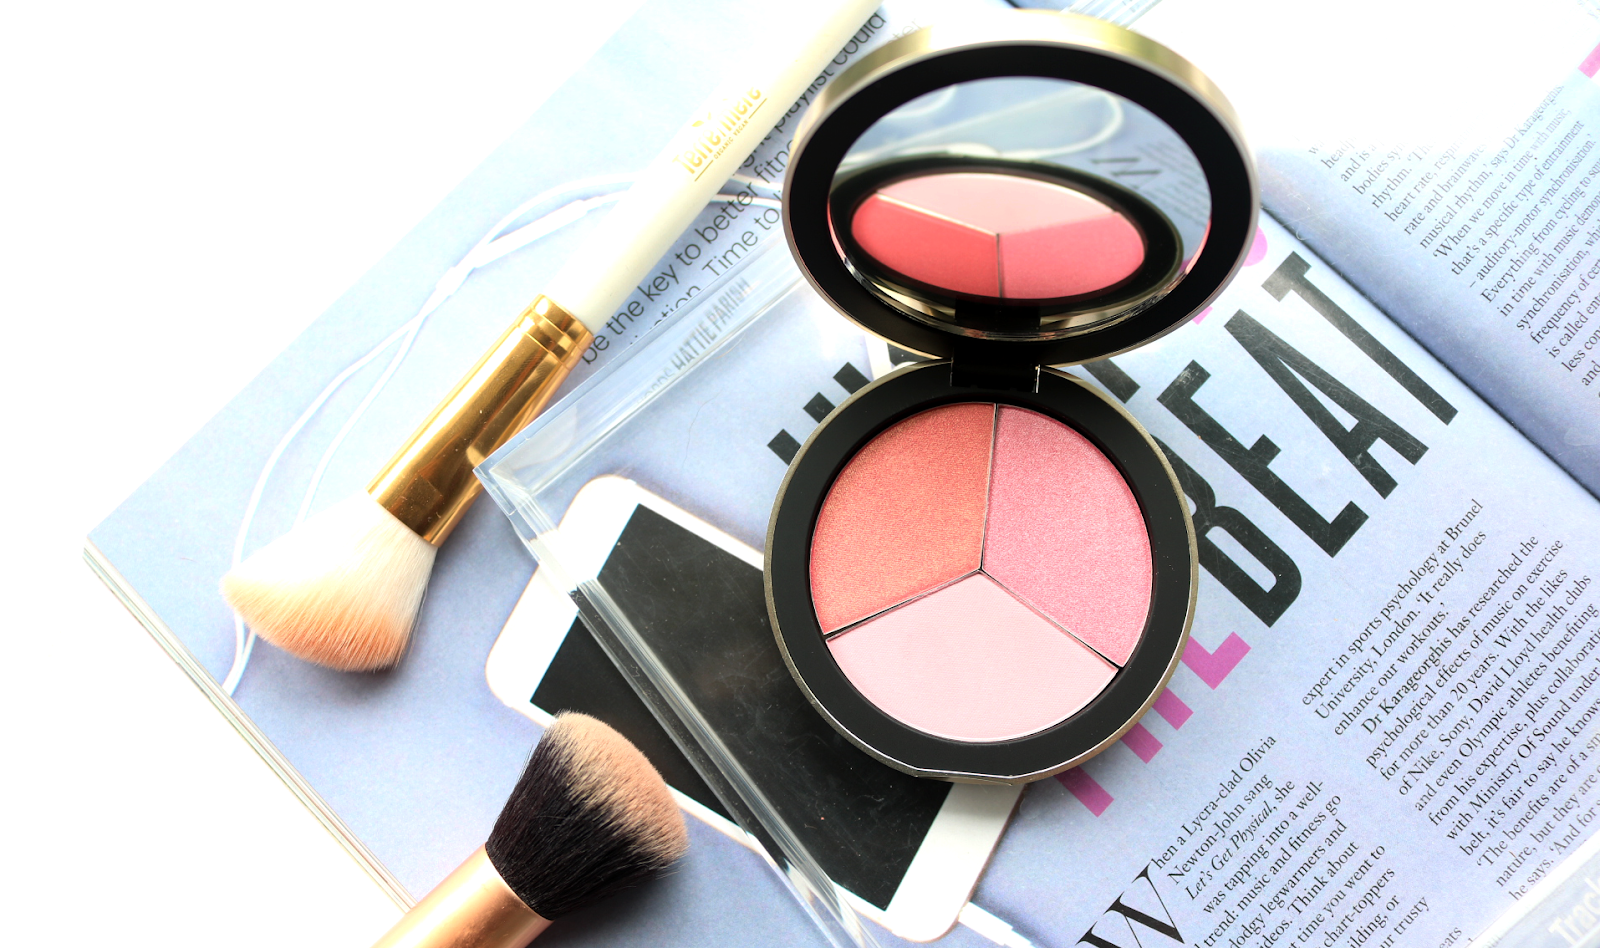 Code8 - Blush Mood-Reflecting Cheek Palette in Pink Beach - Review & Swatches